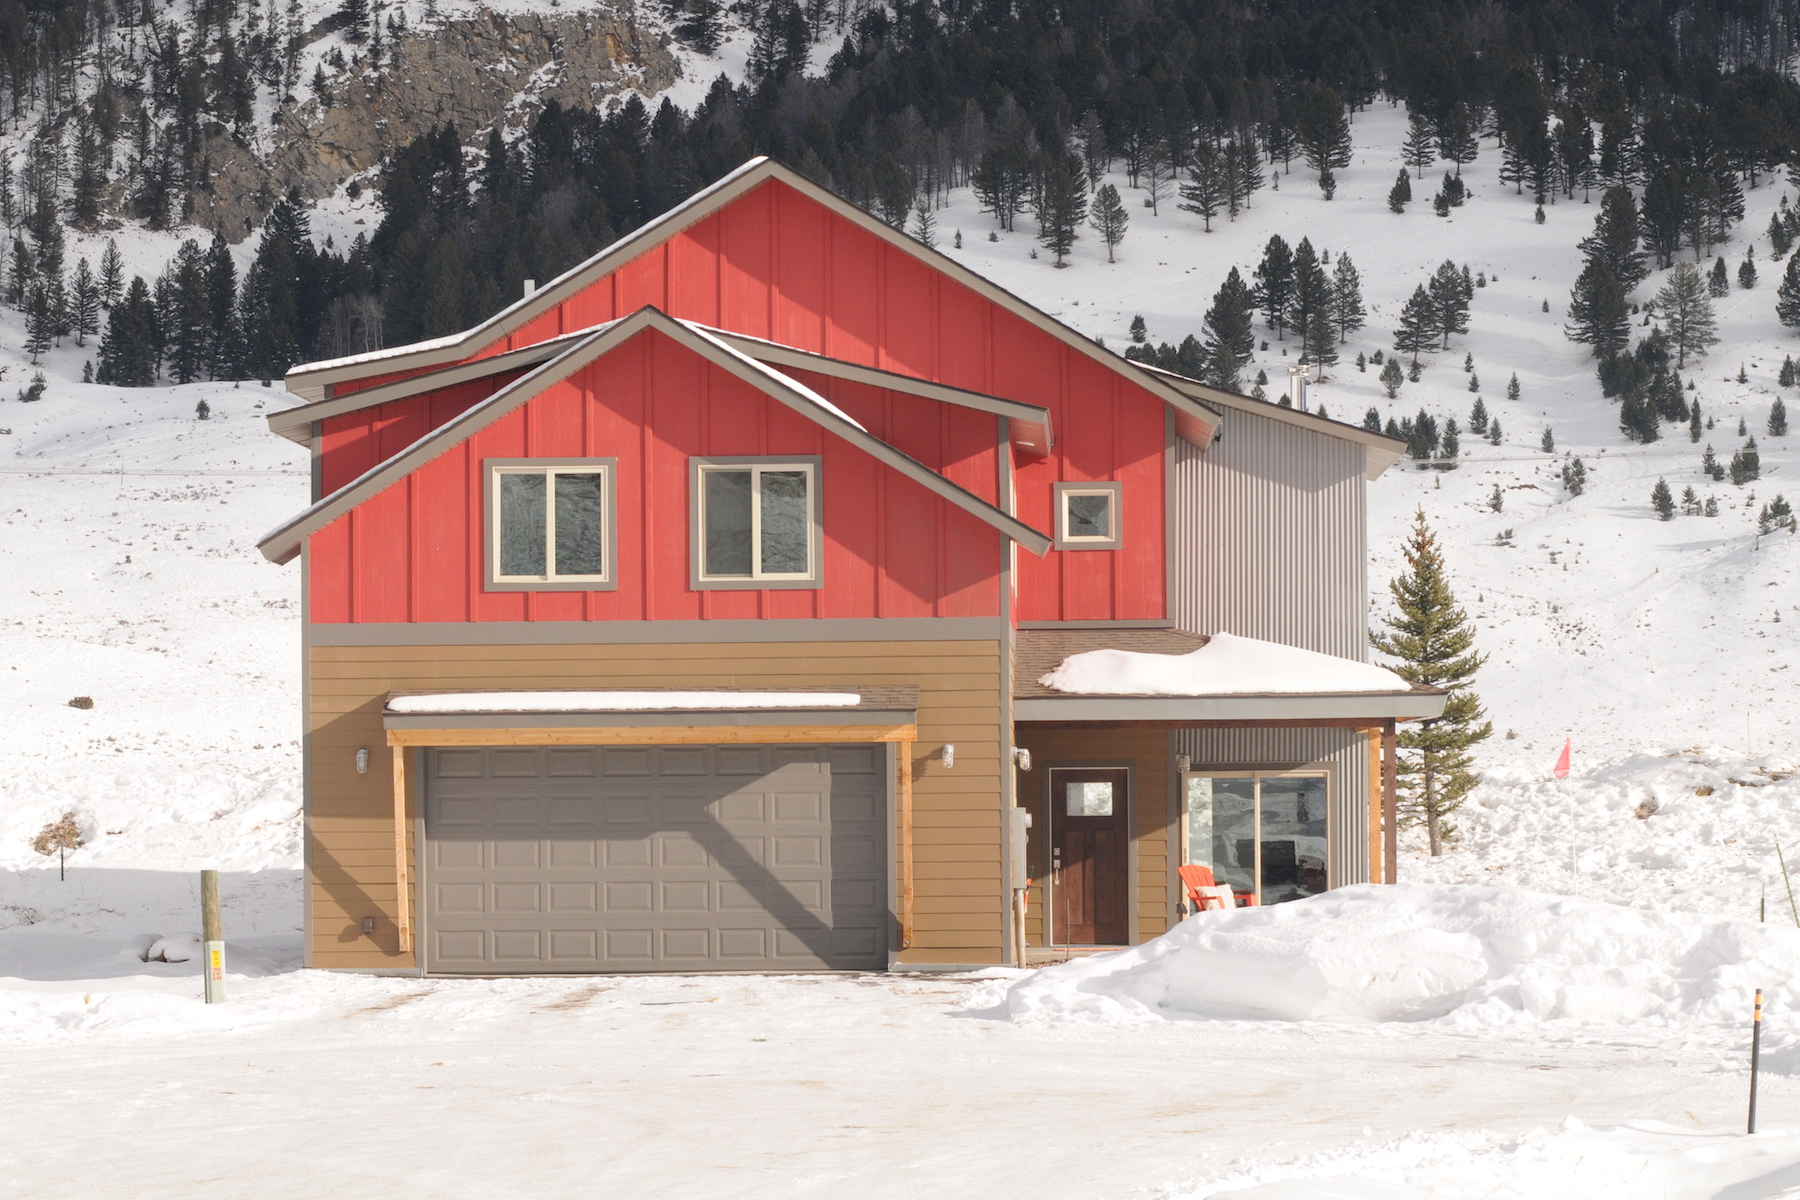 Single Family Home for Sale at Big Sky's Ramshorn Custom Home - To Be Built 90 Primrose Big Sky, Montana, 59716 United States